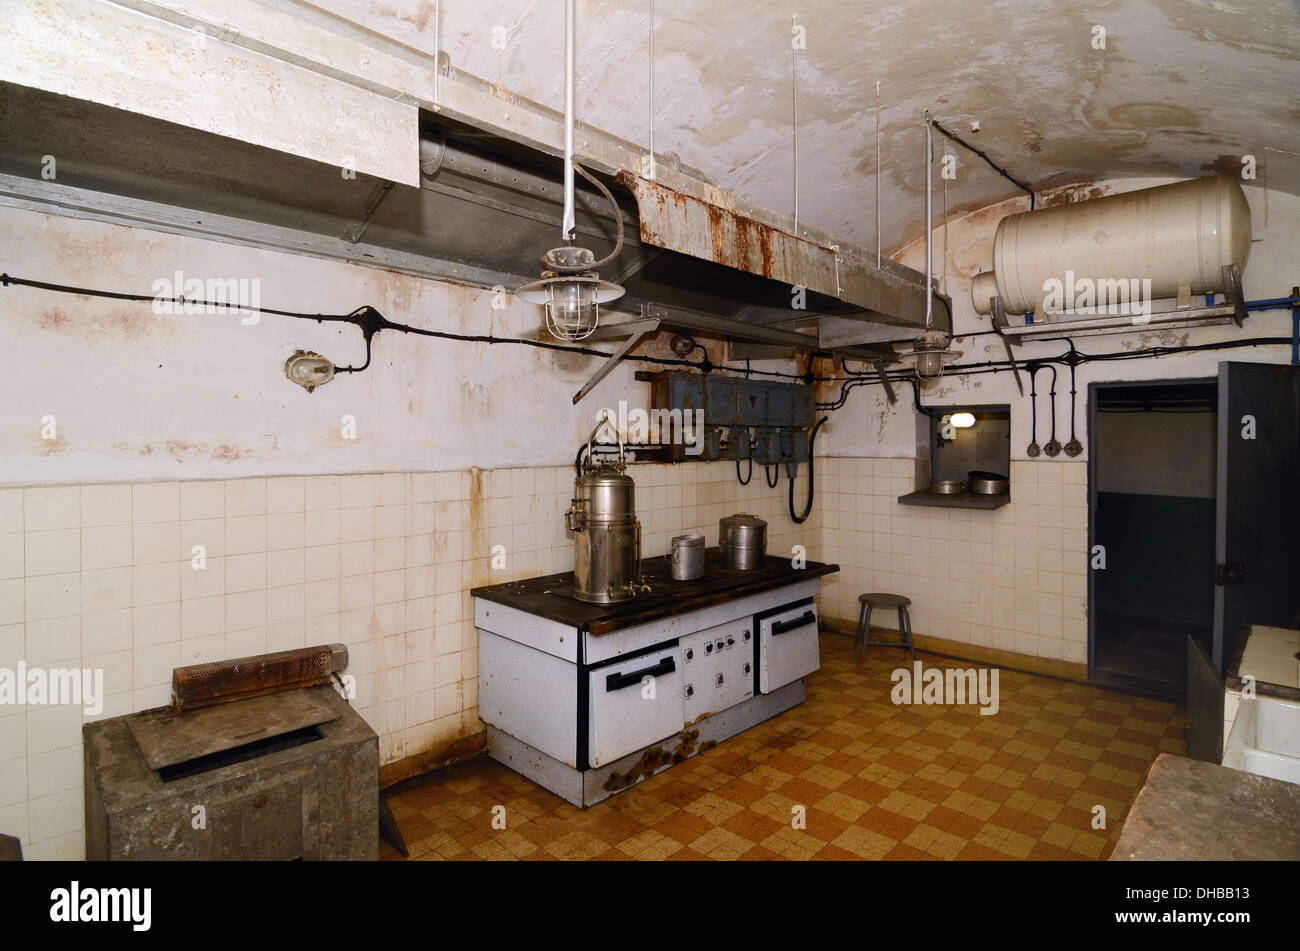 Old Military Kitchen and Vintage Cooker Fort Saint Gobain Modane Maurienne Savoie France - Stock Image